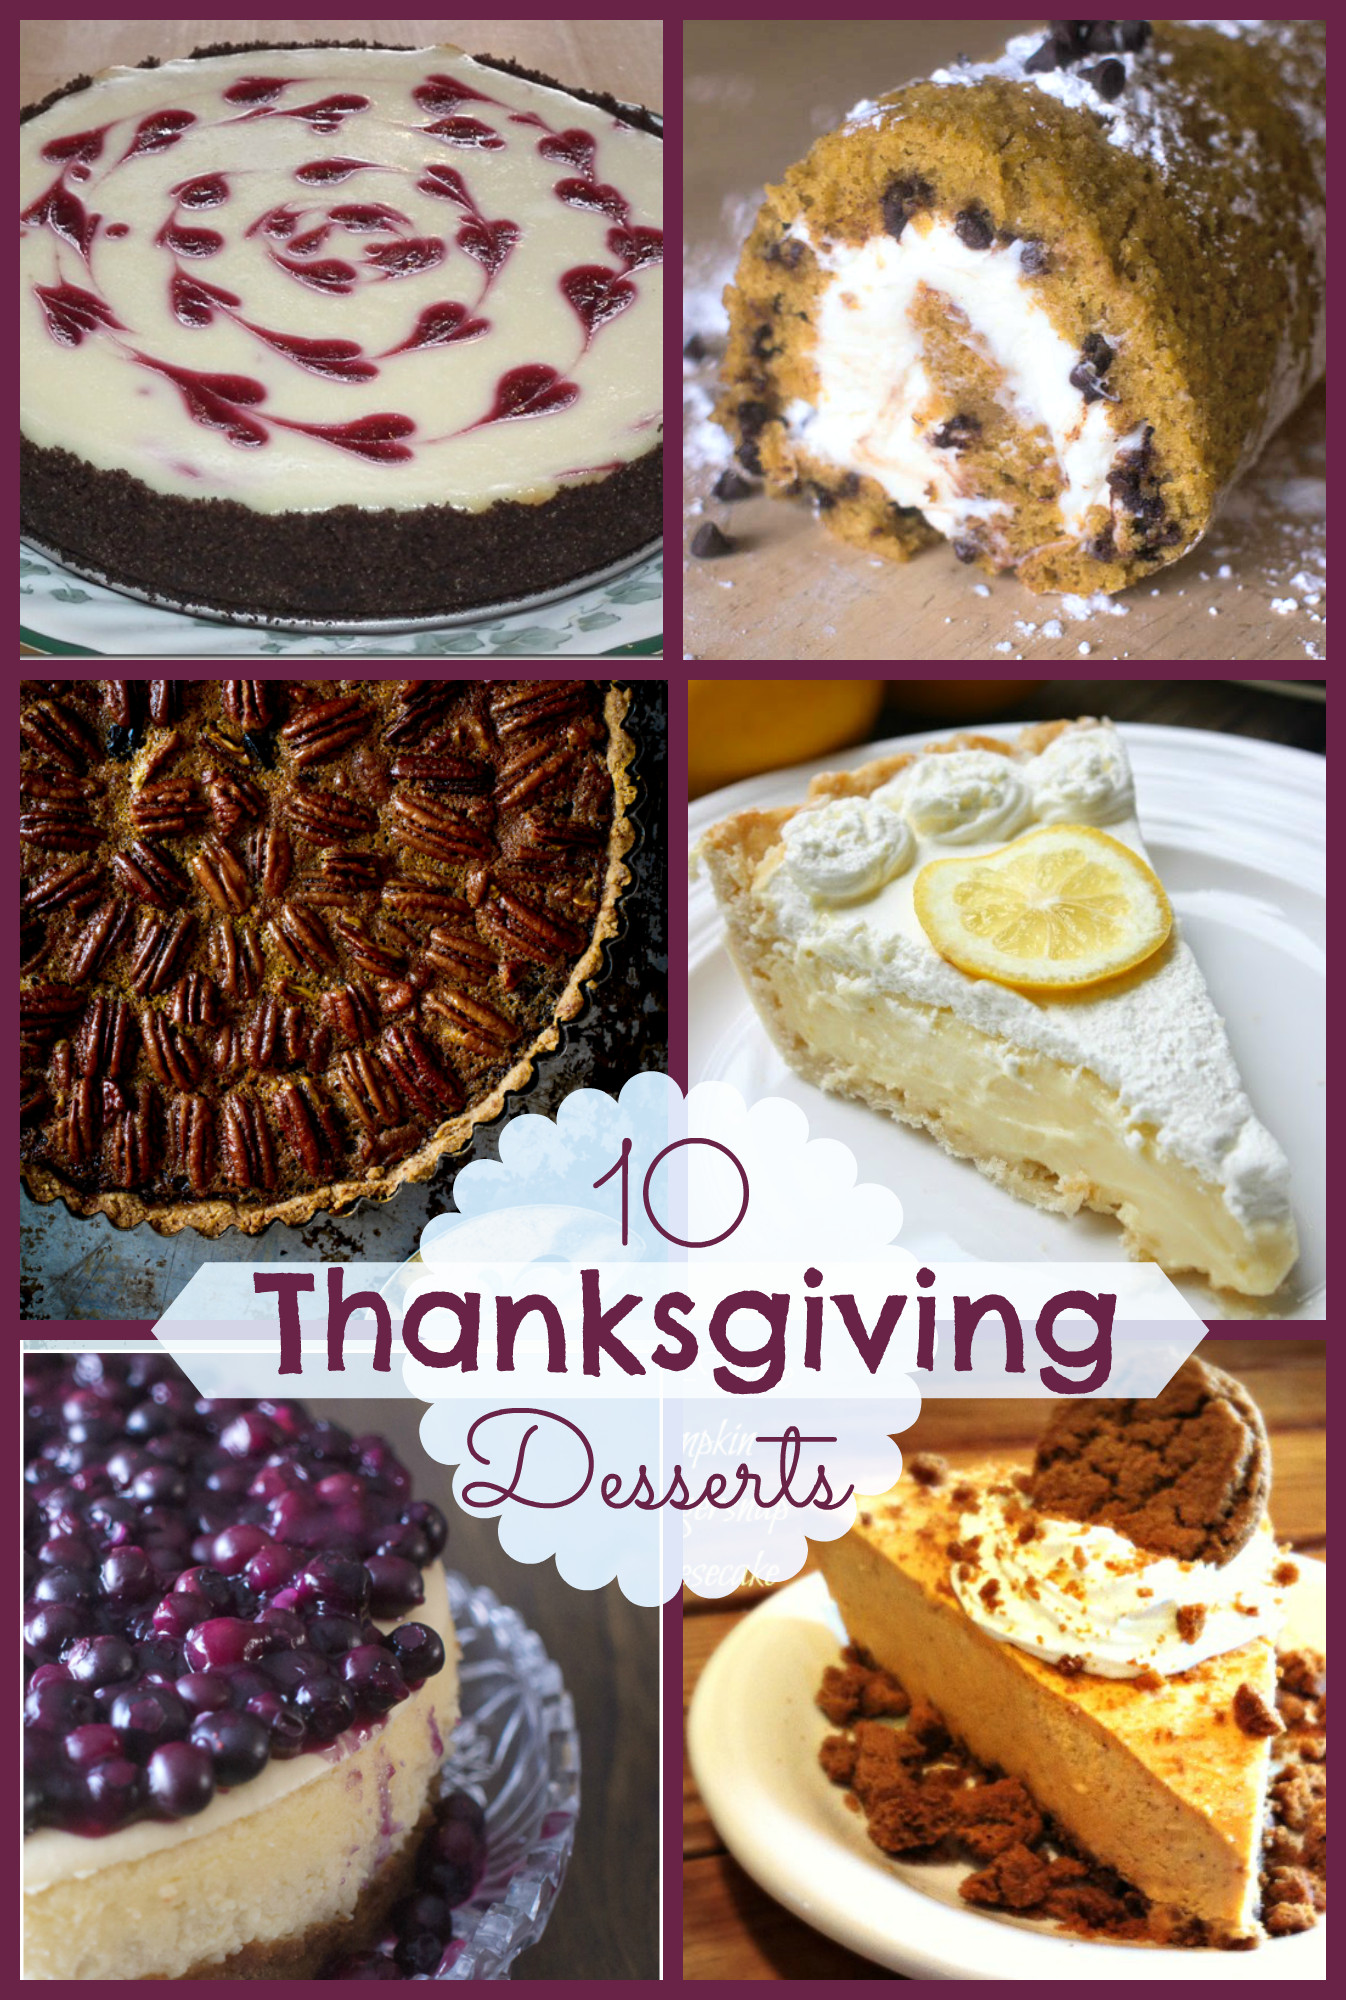 Thanksgiving Pies And Cakes  10 Fabulous Thanksgiving Desserts